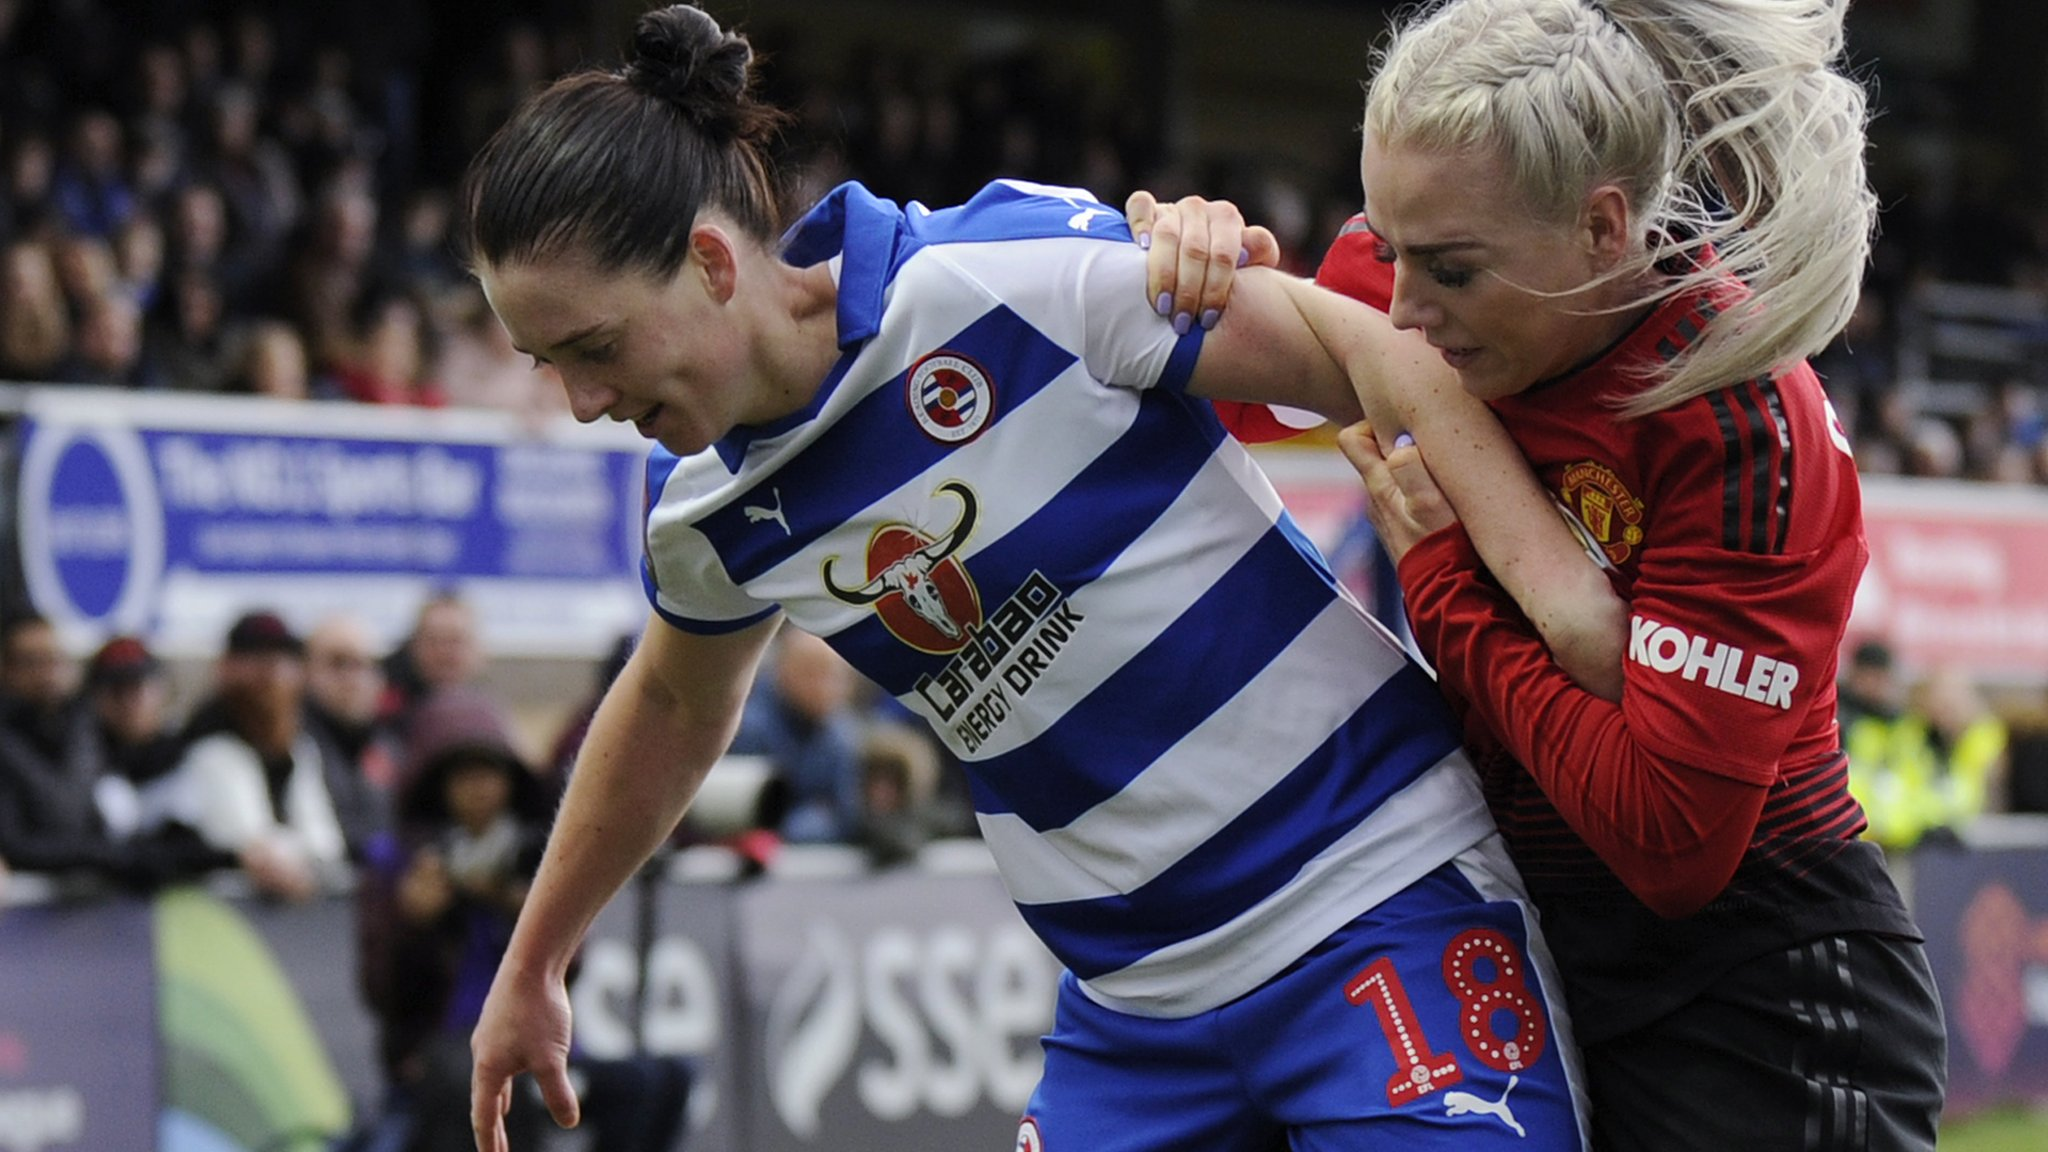 Women's FA Cup: Reading Women 3-2 Manchester United Women AET